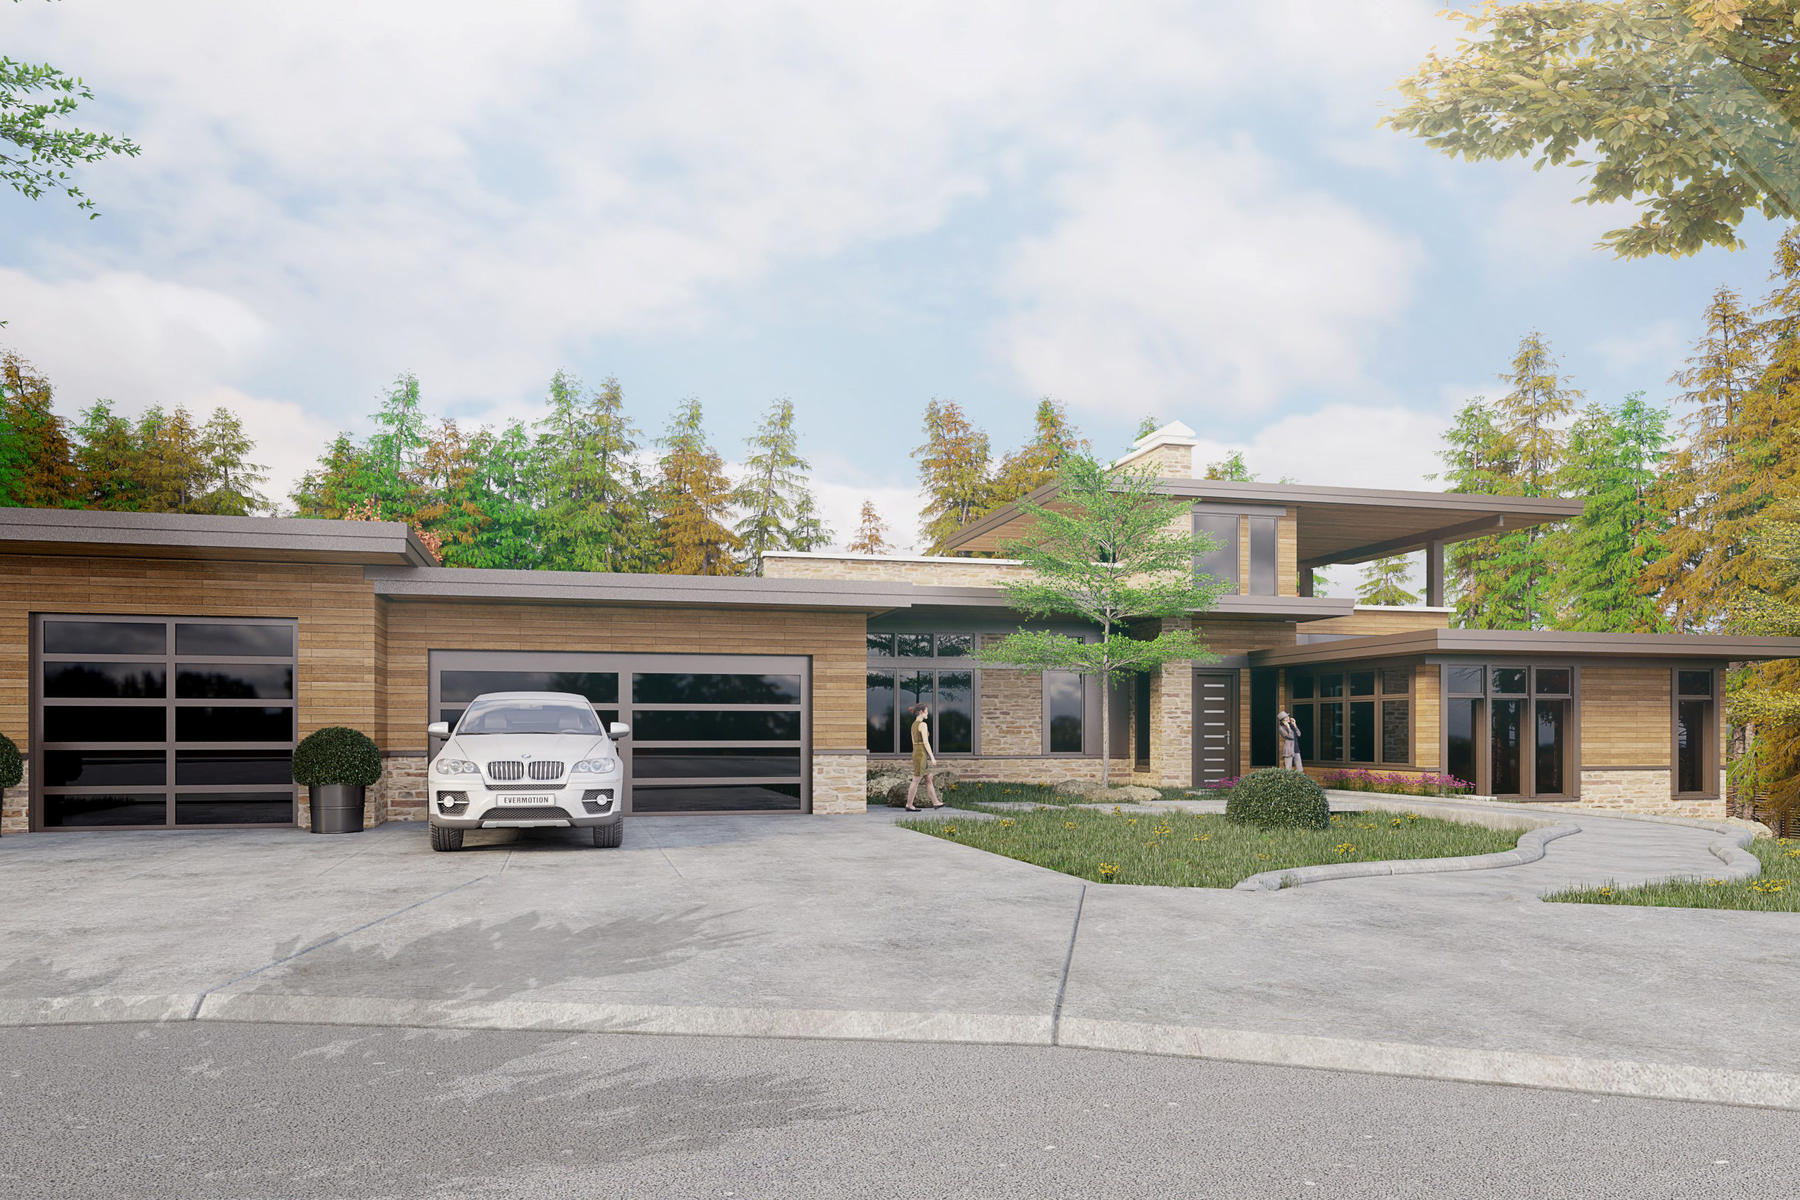 Single Family Homes for Sale at Modern Contemporary Custom Home To Be Built 418 North 850 West Lot 9, Midway, Utah 84049 United States